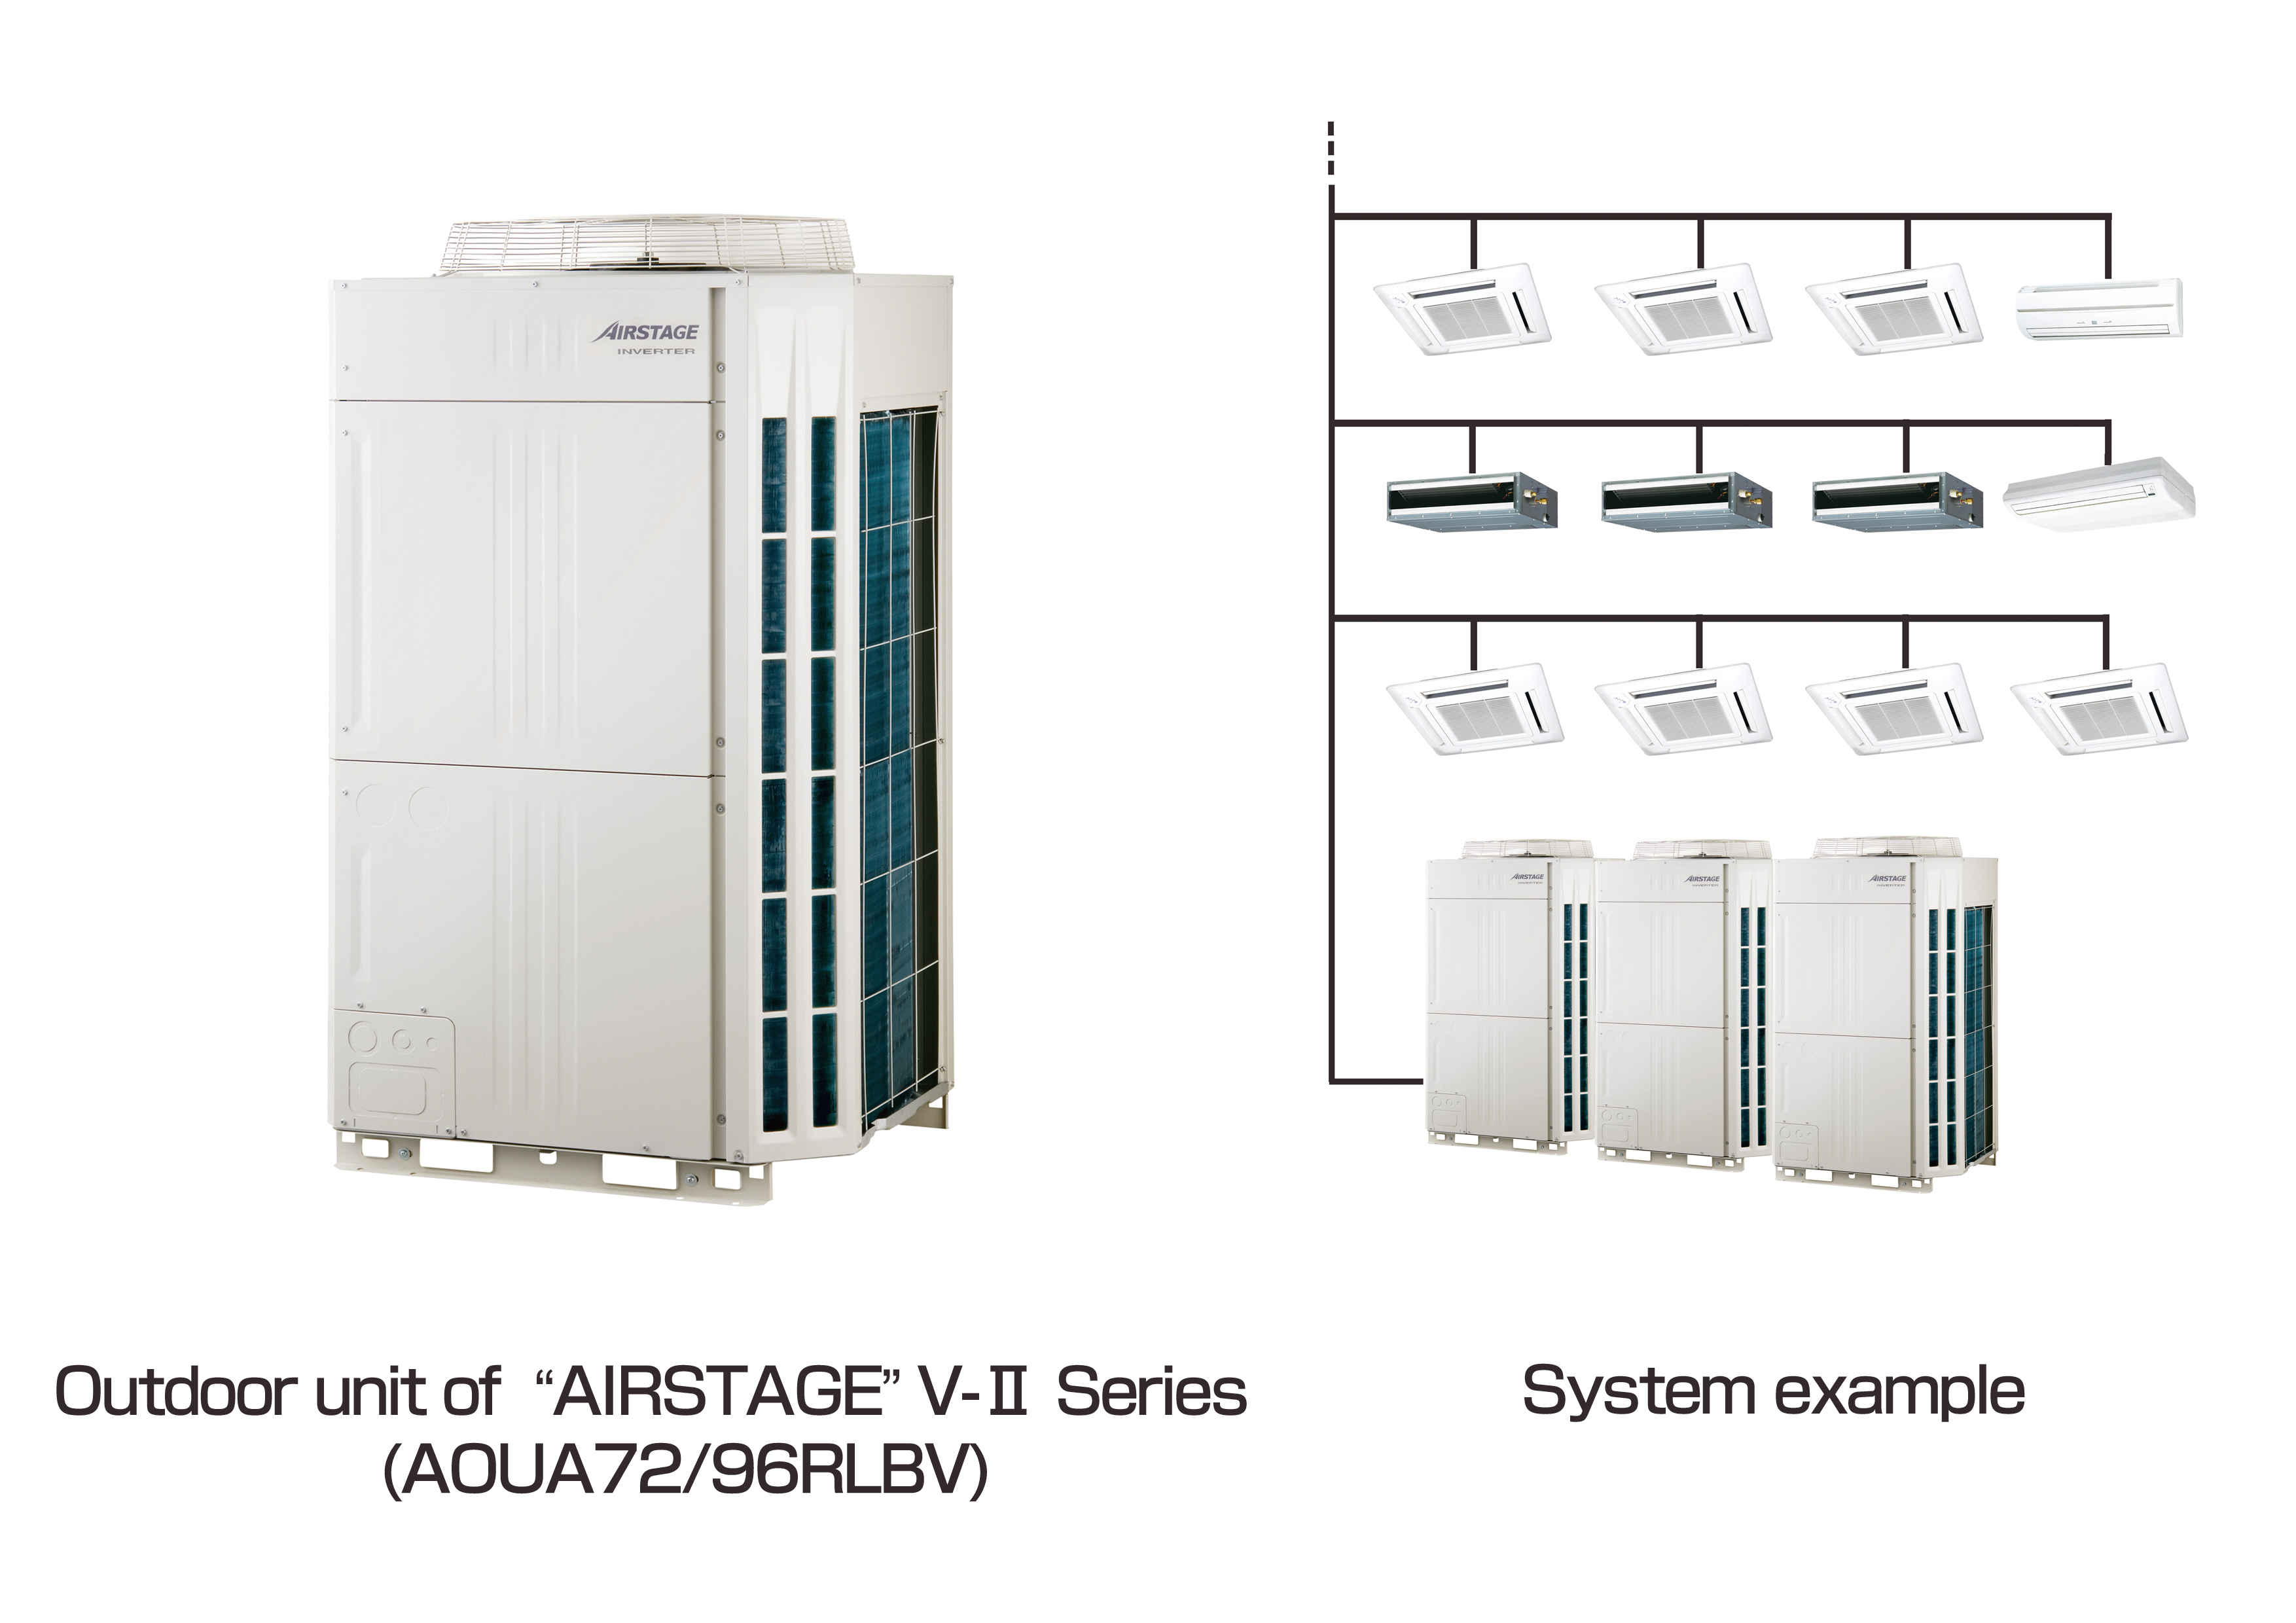 New release of commercial use modular type multi air conditioning  #1E4E59